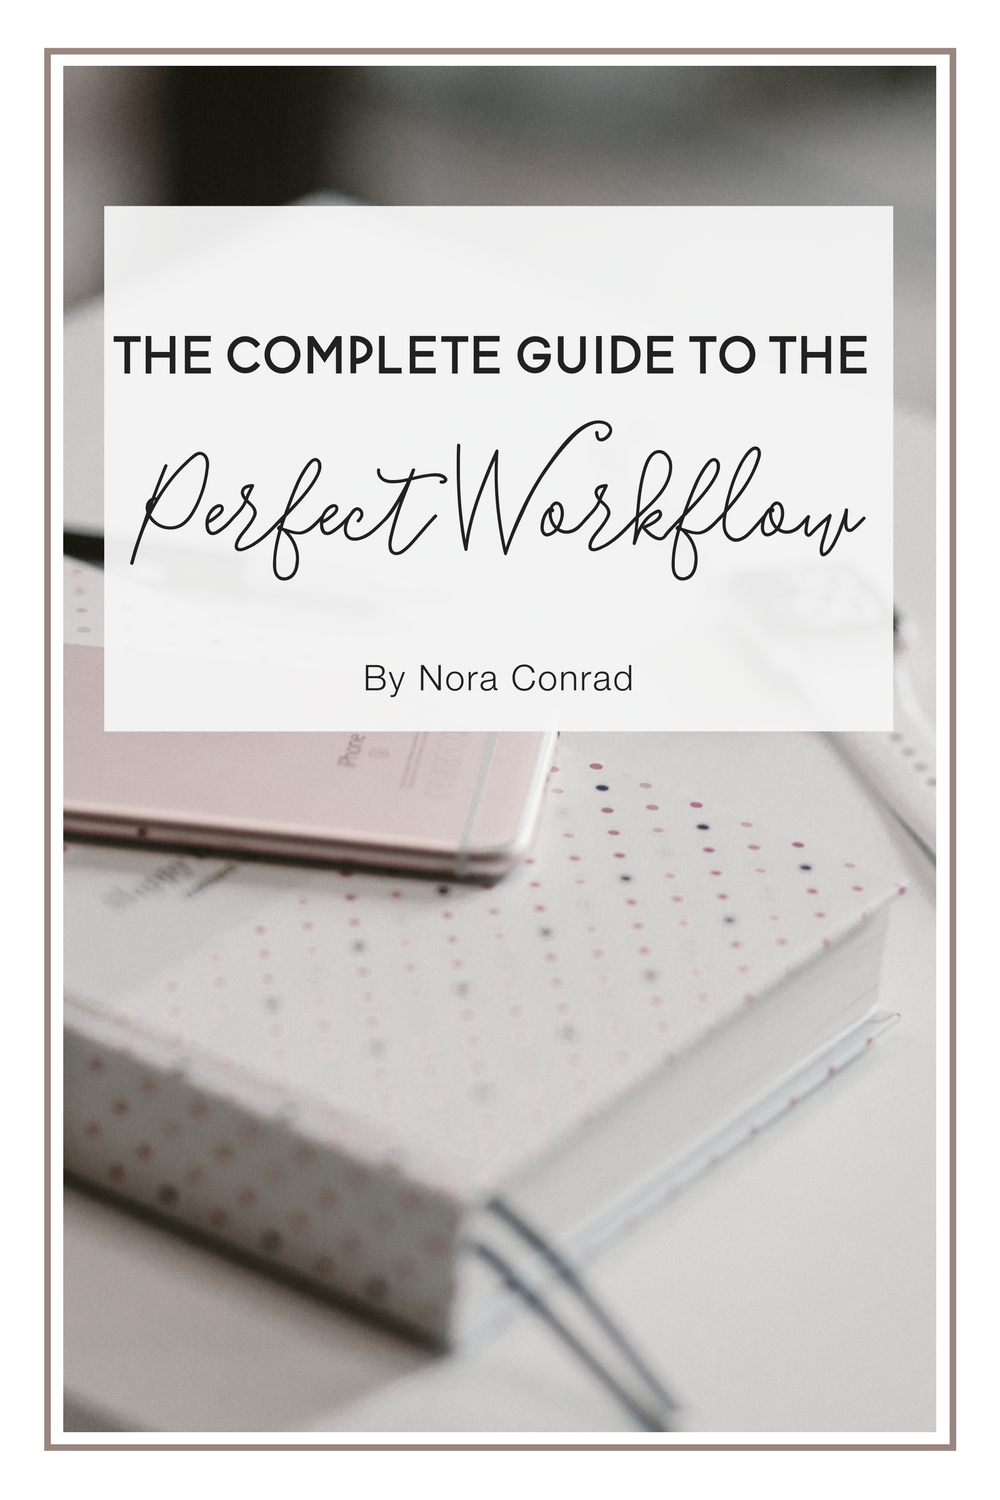 The Complete Guide to the Perfect Workflow